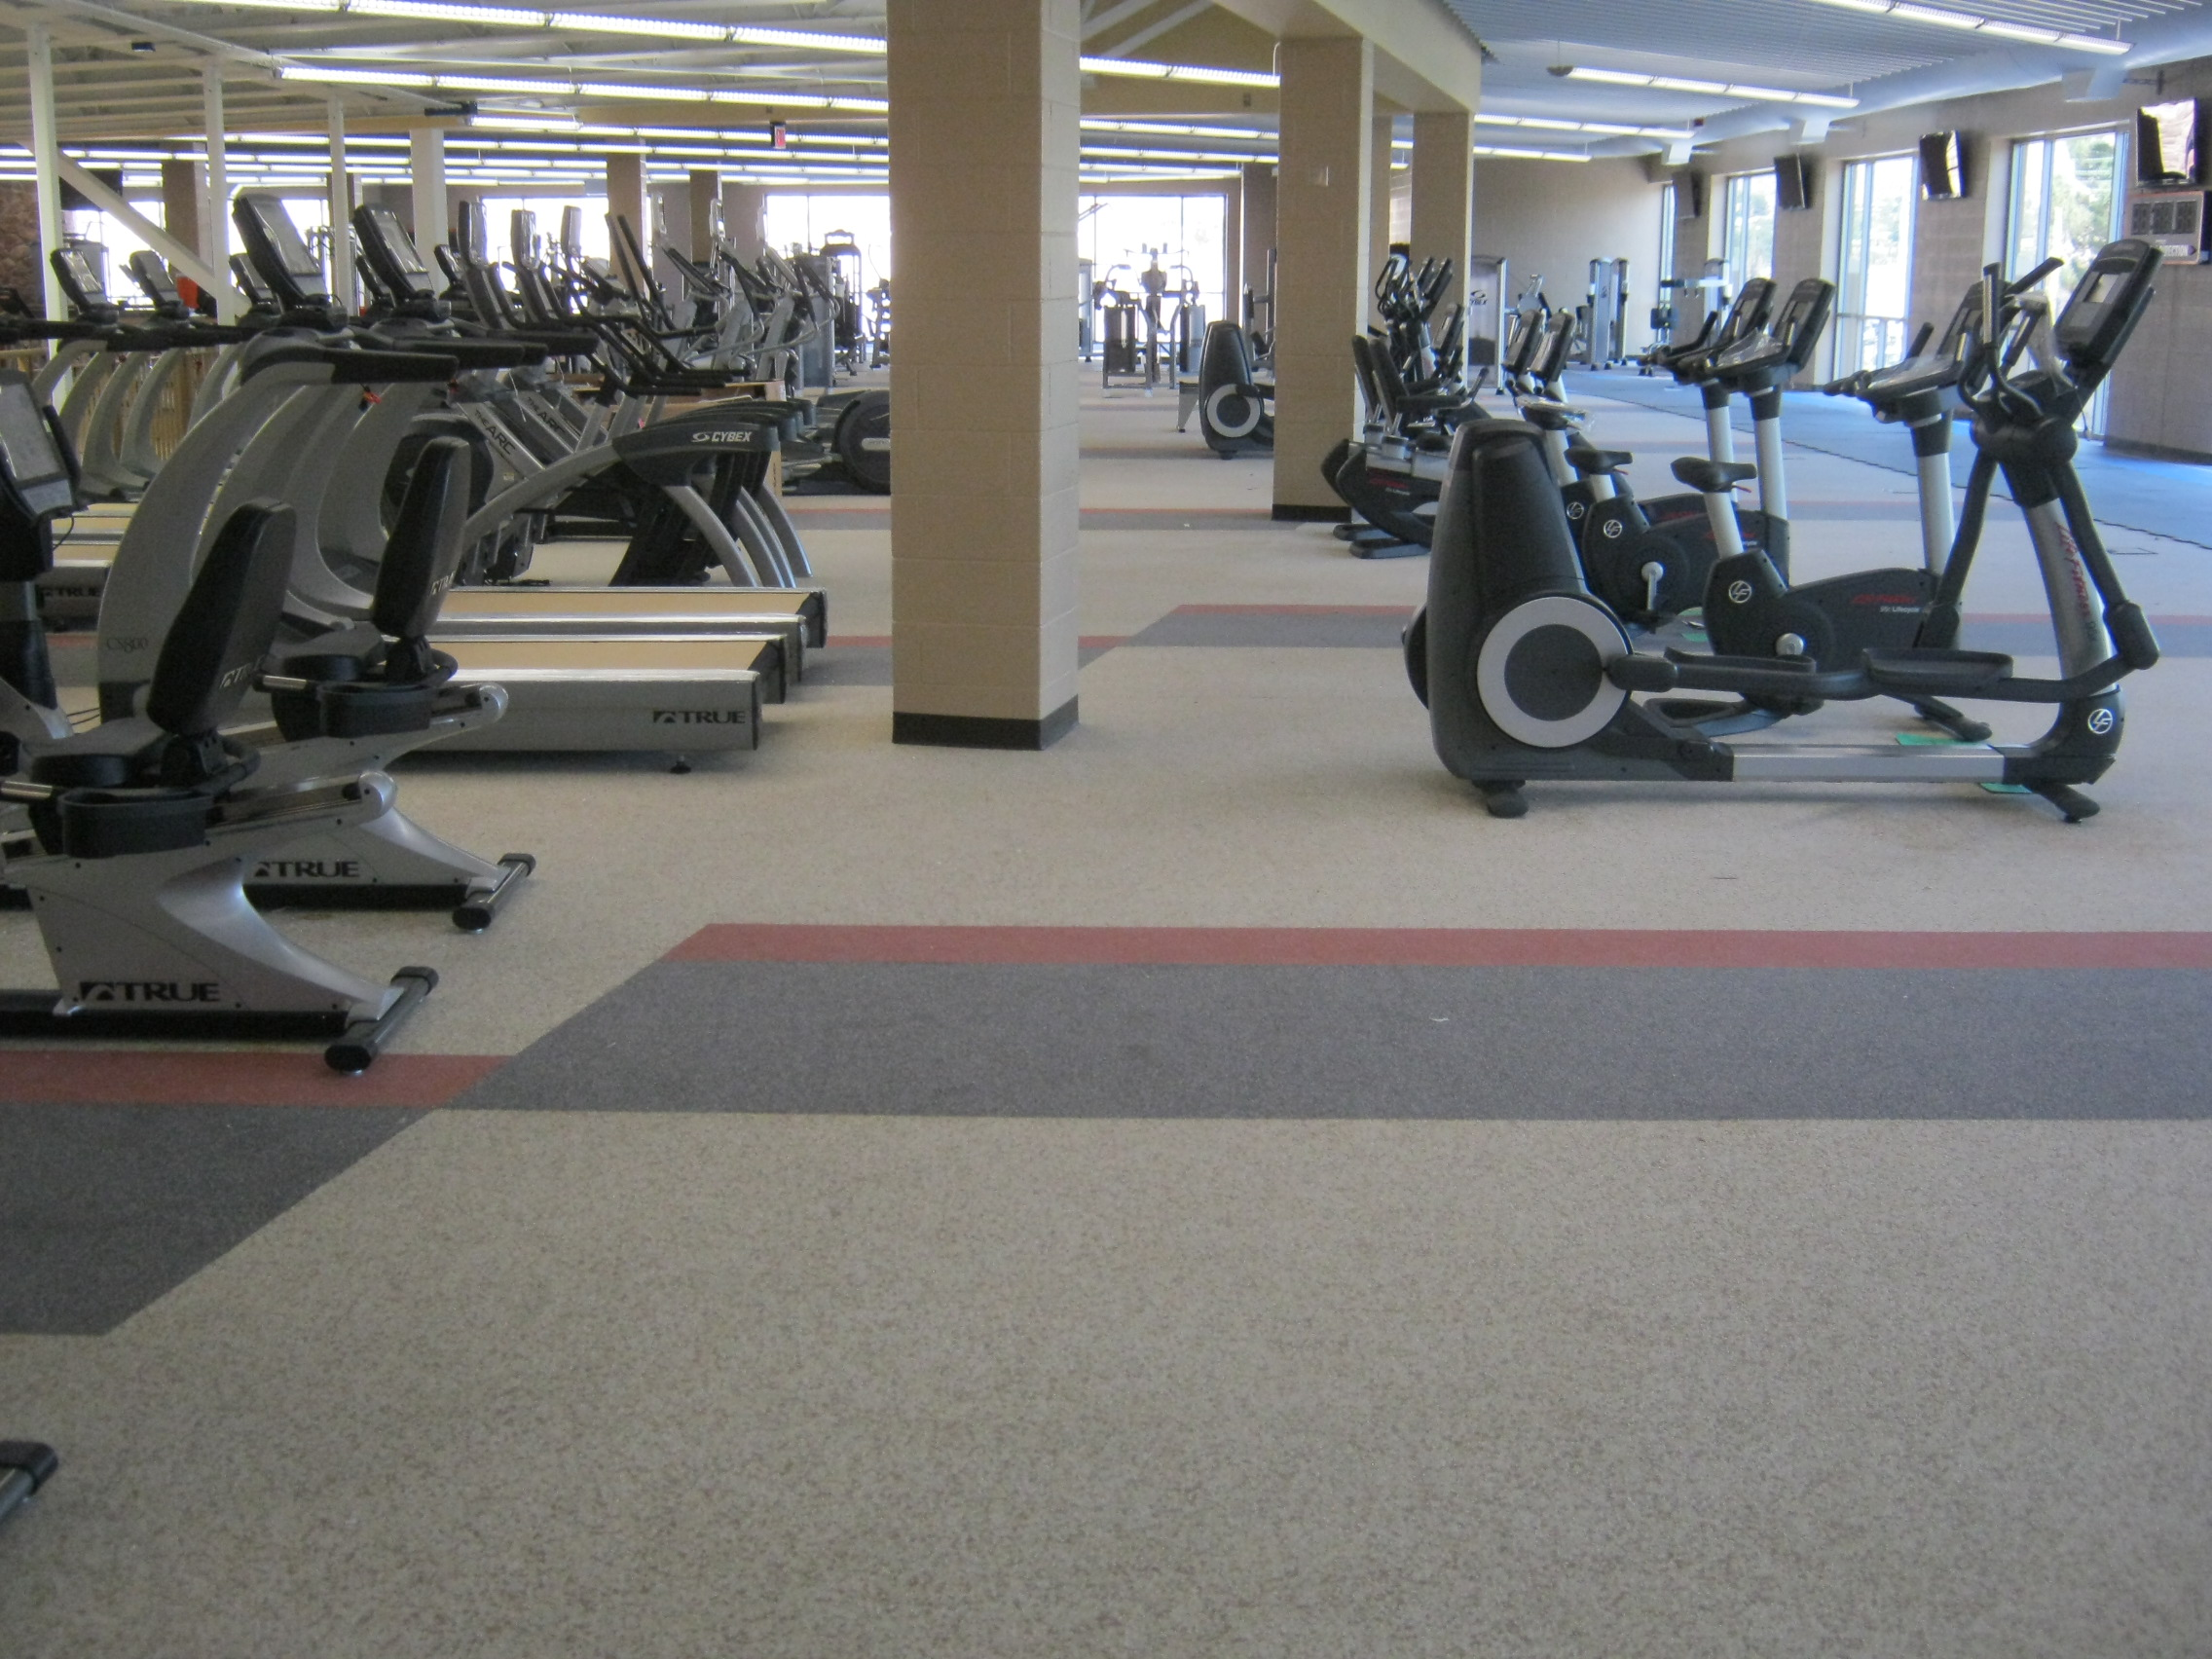 design flooring ahs and service cuninghamgroup floors weight room installation